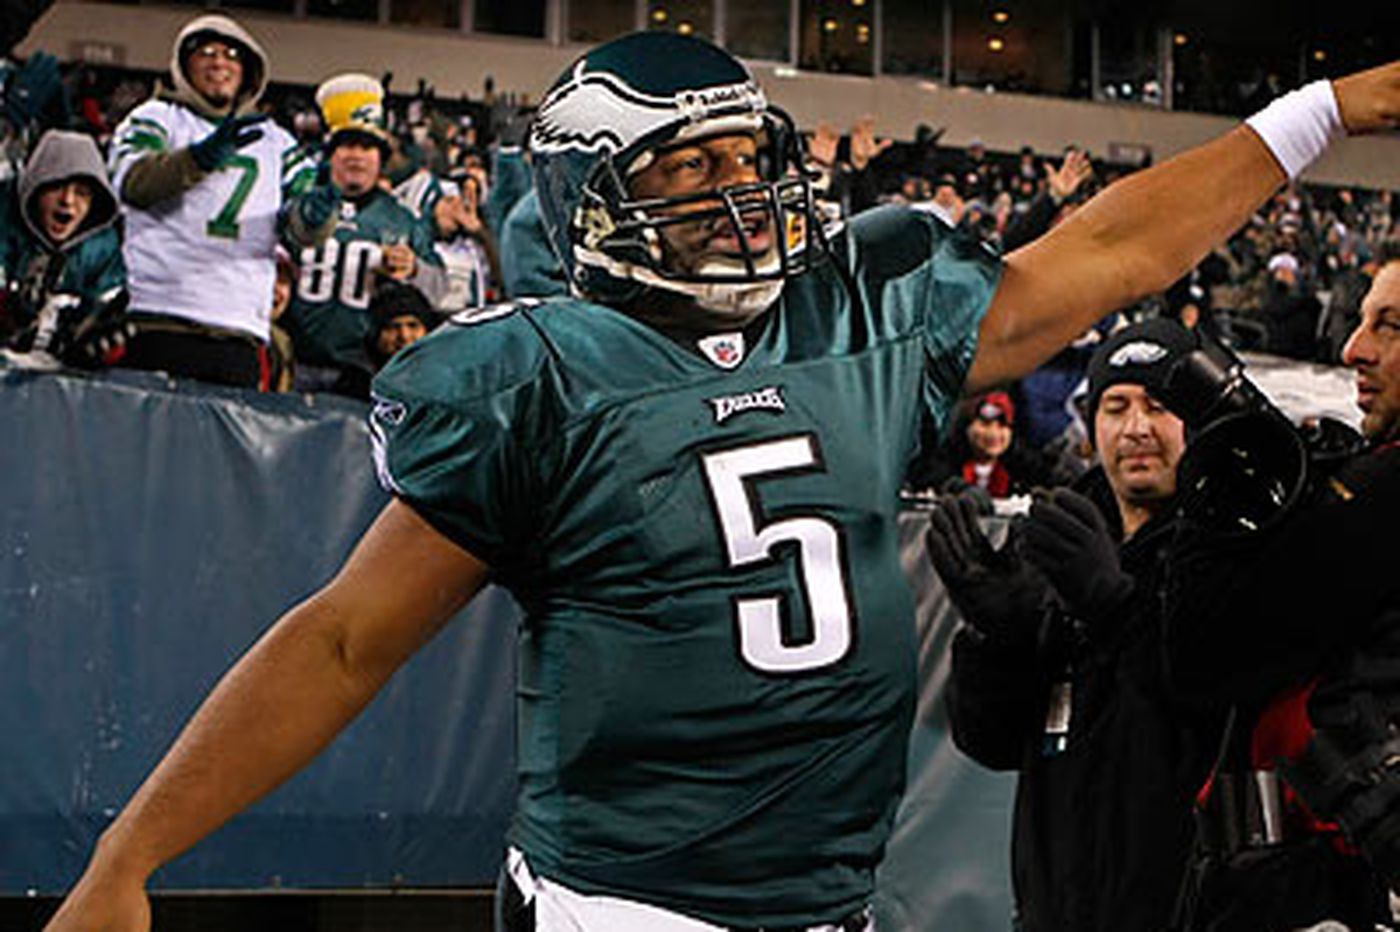 Rich Hofmann: Say what you will, McNabb is able to get 'er done